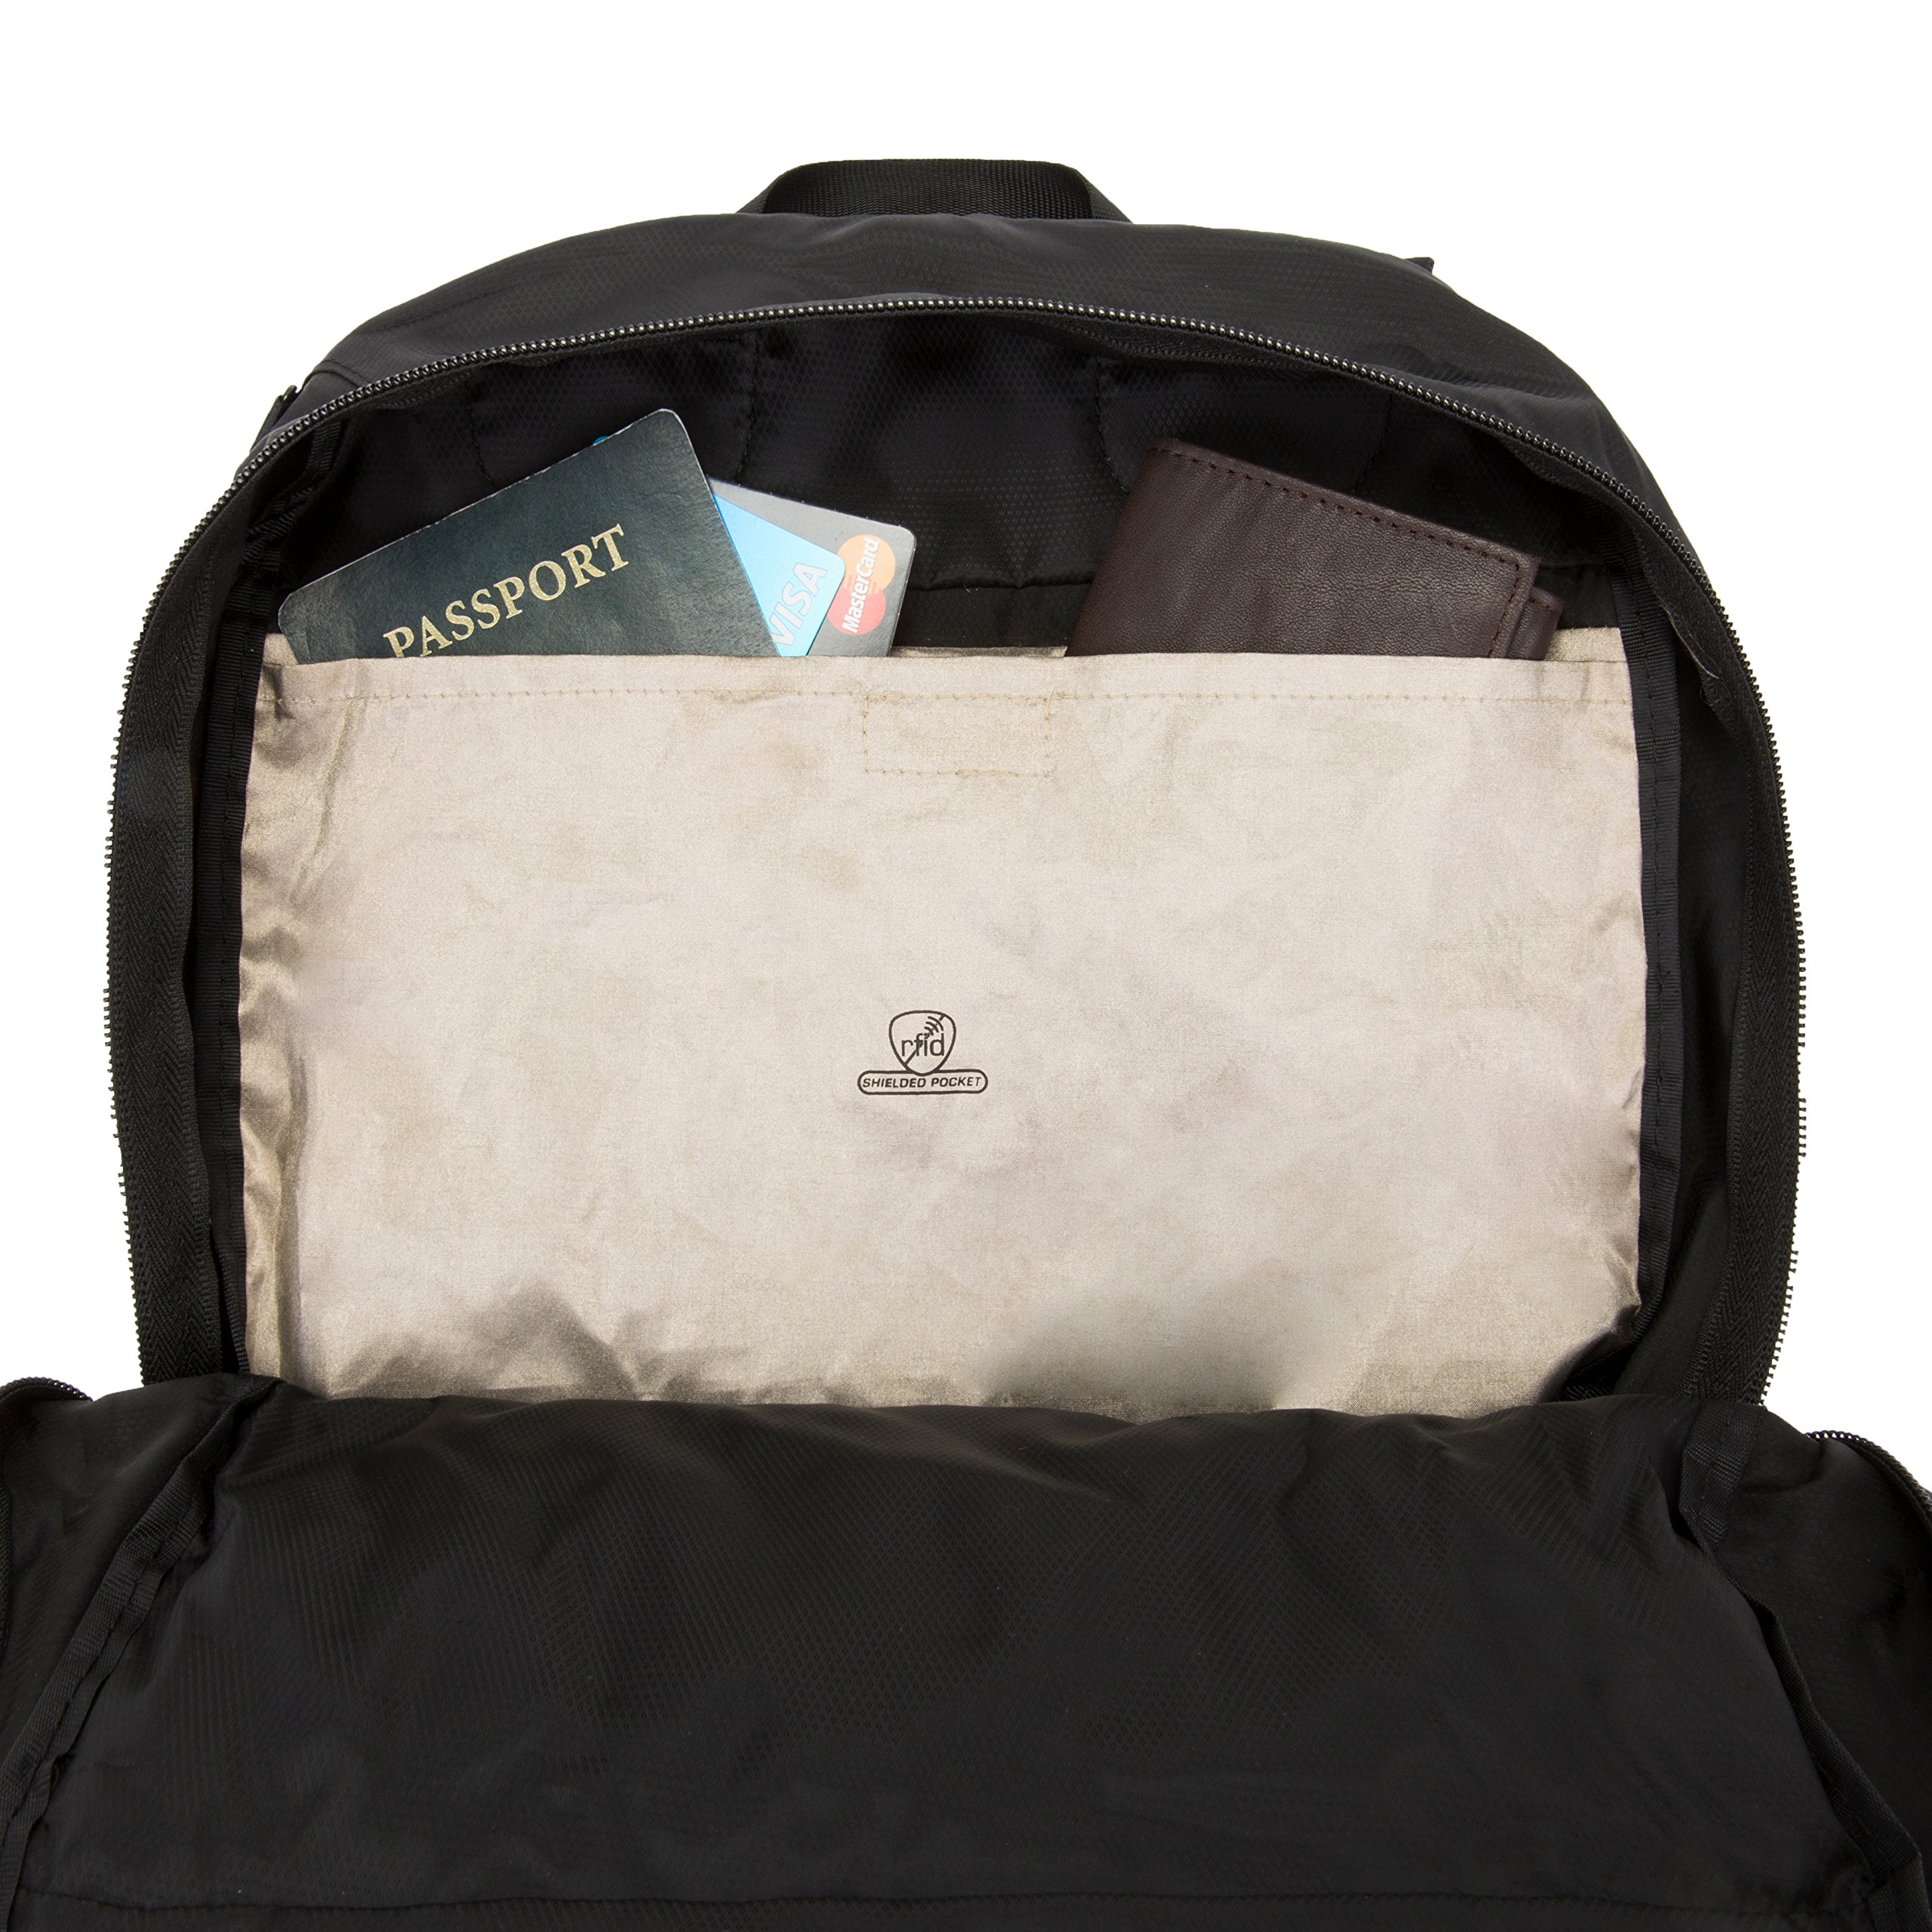 Travelon Anti-theft Packable Backpack by Travelon (Image #5)